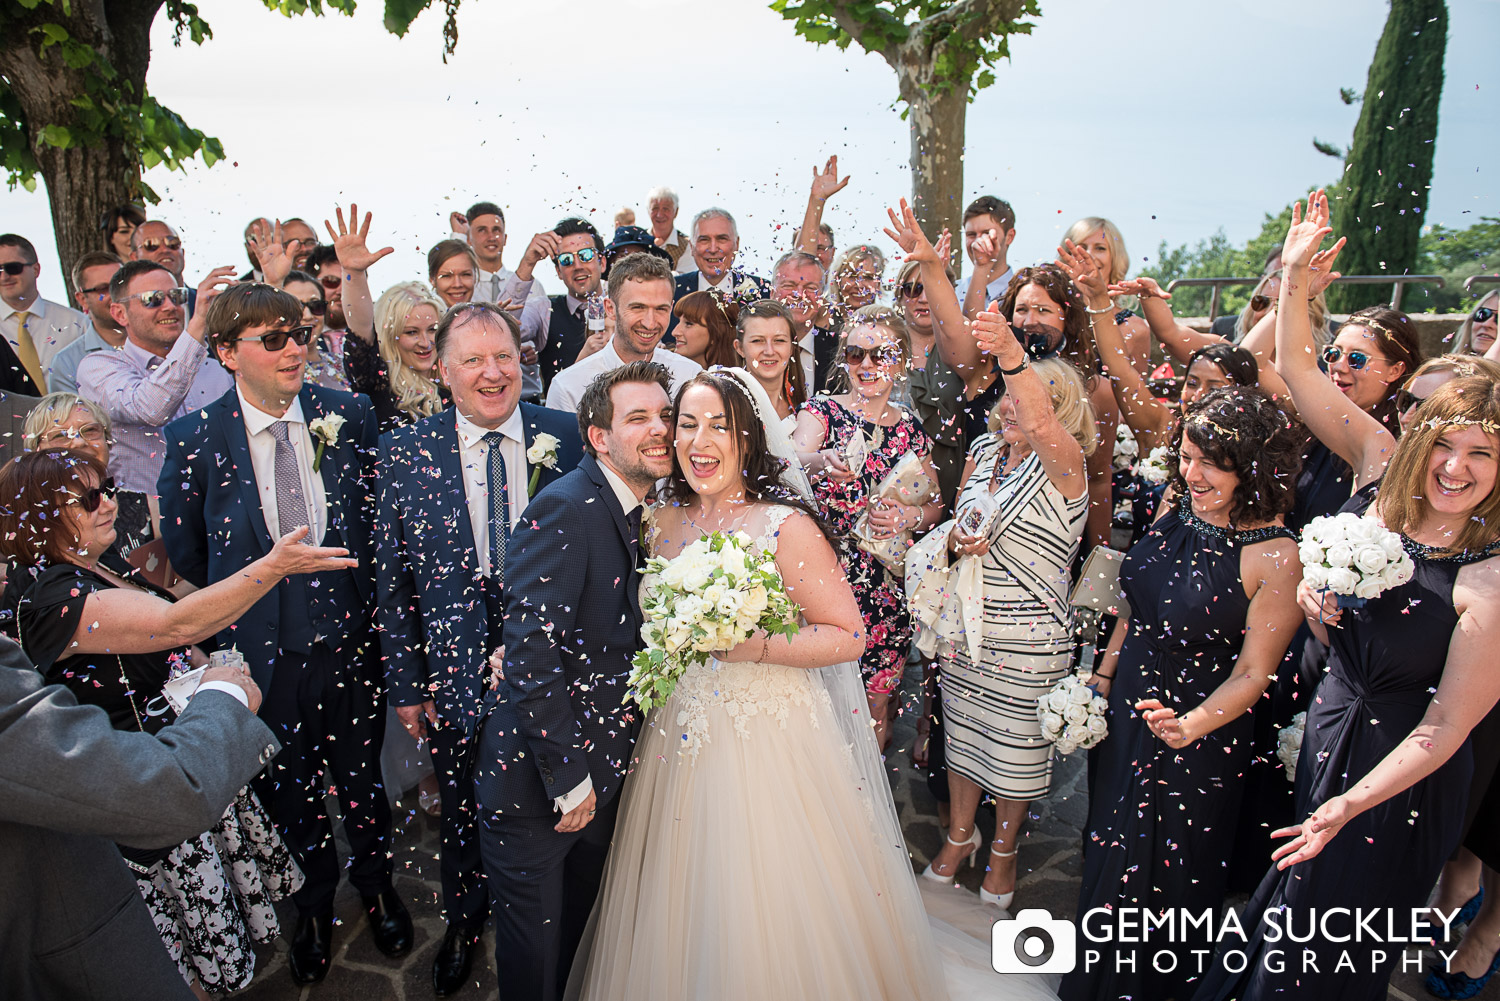 confetti being thrown at the bride and groom in lake garda